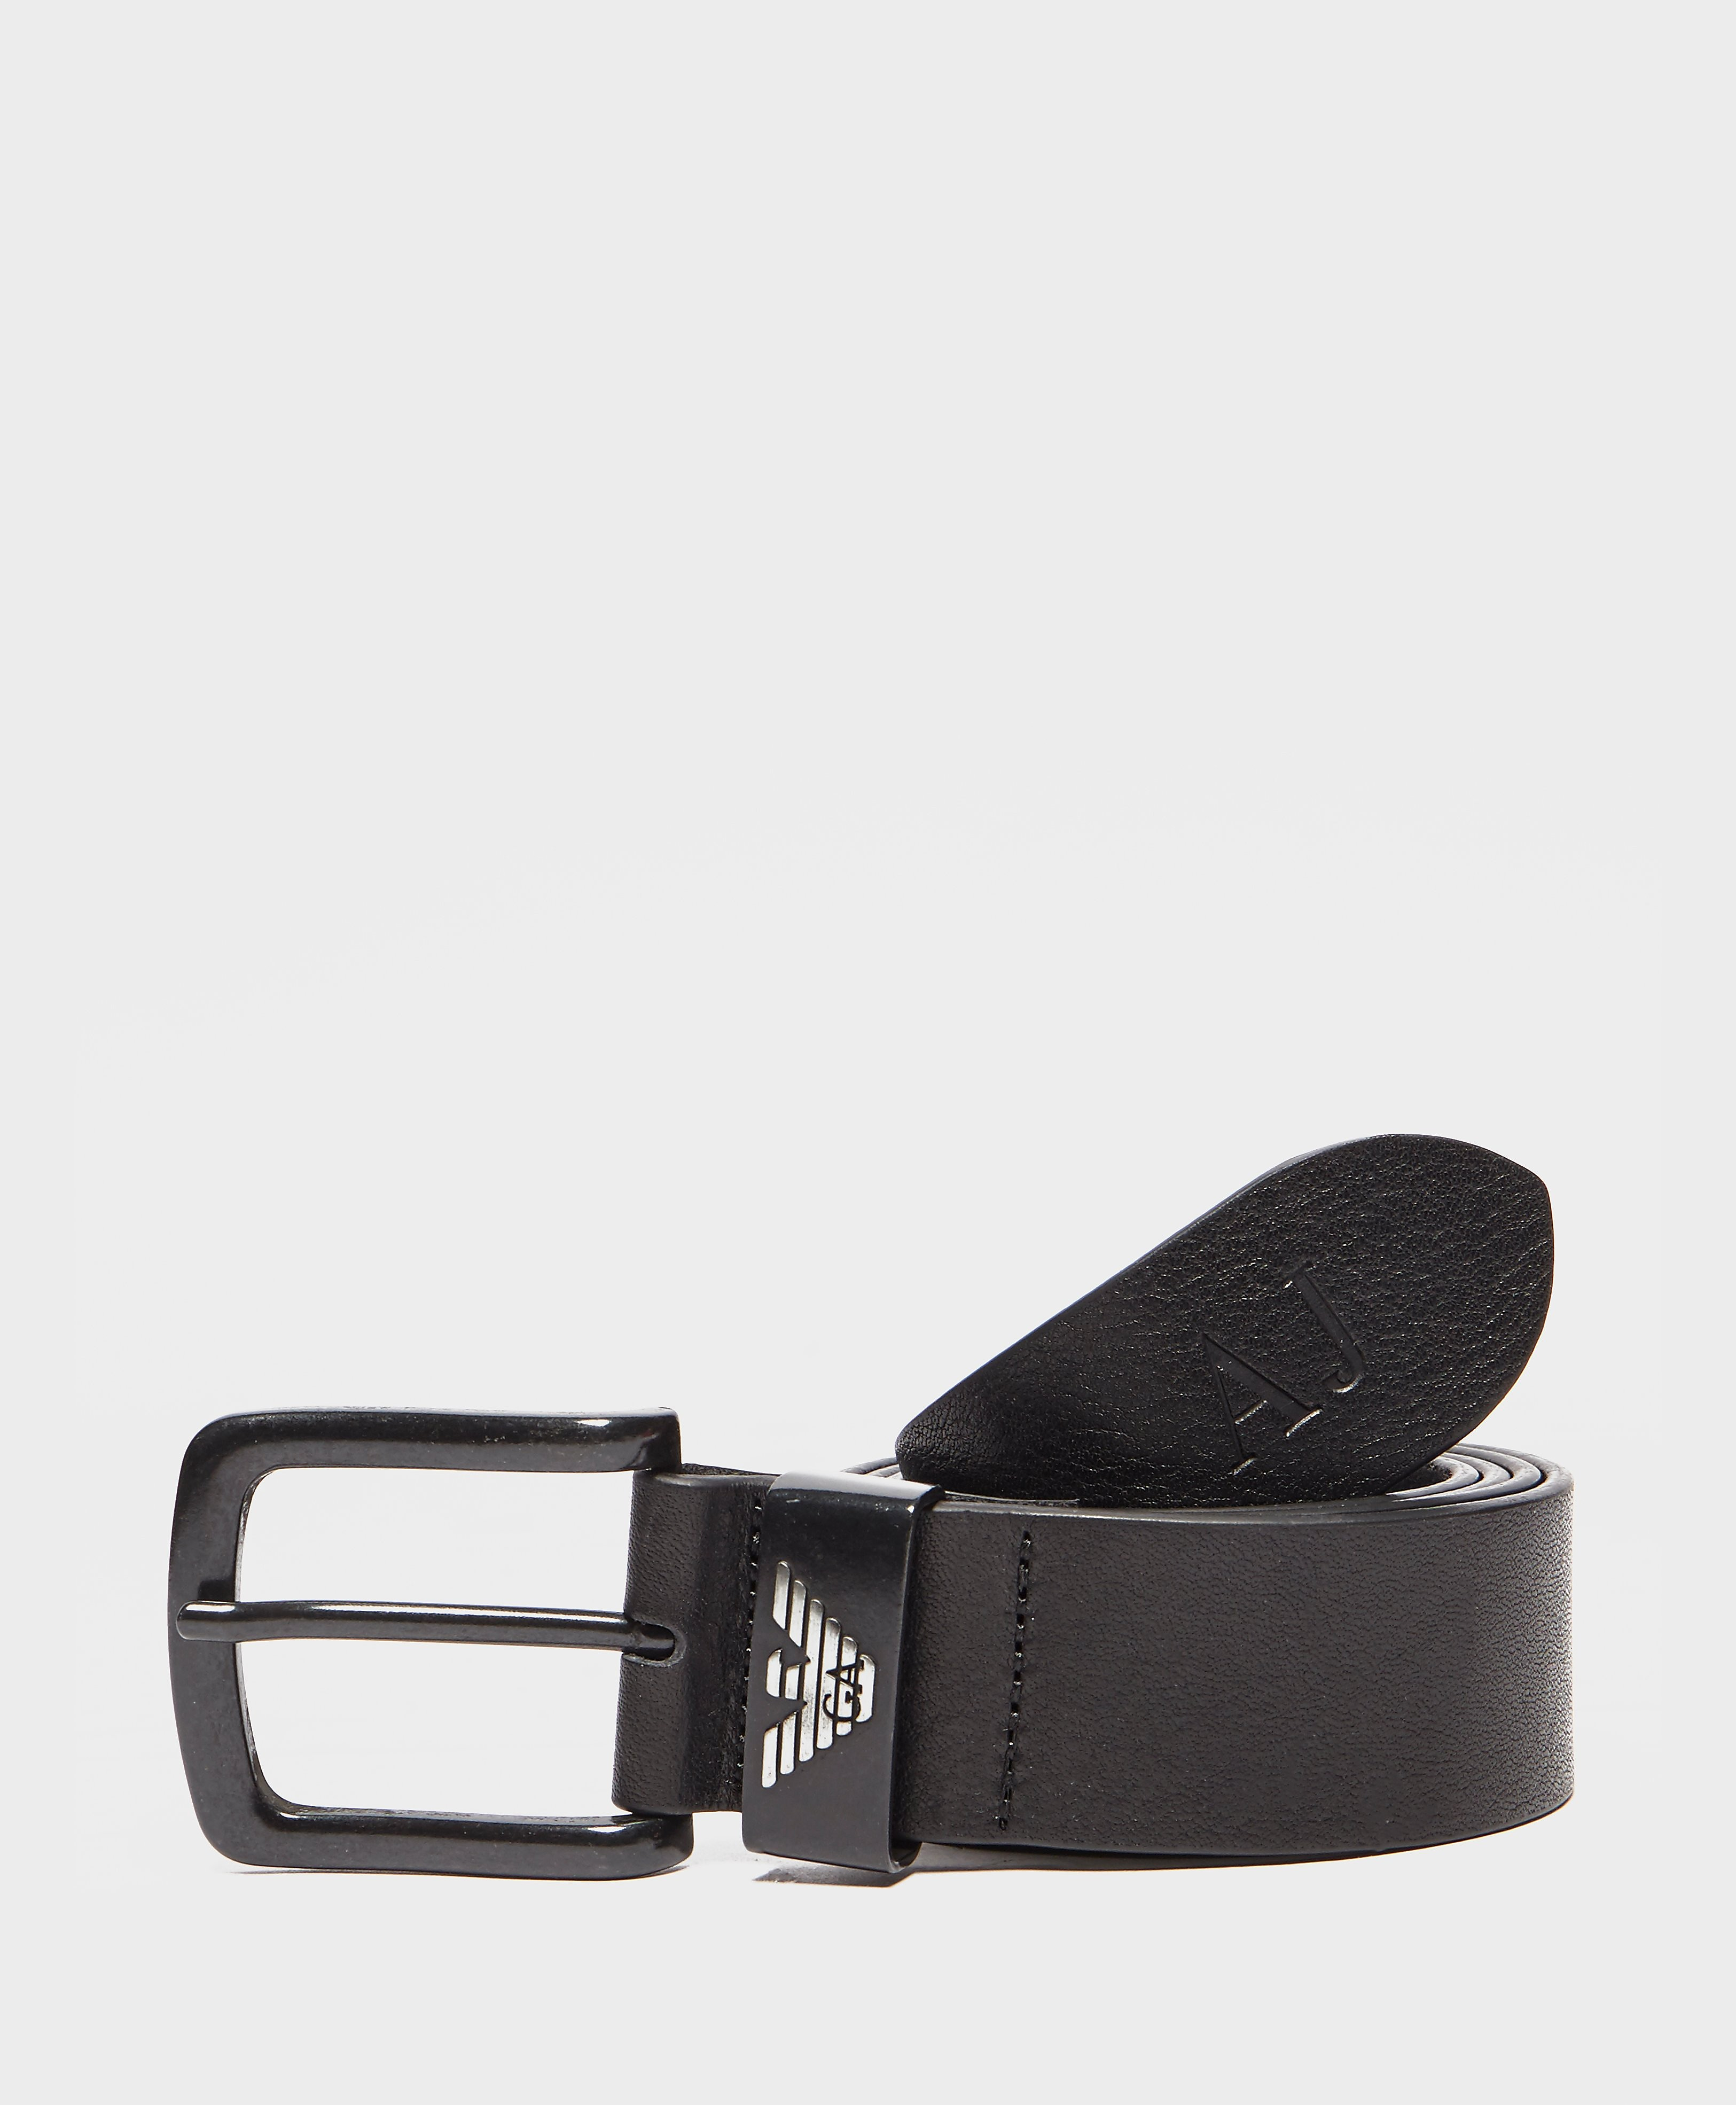 Armani Jeans Leather Belt Set  Black Black